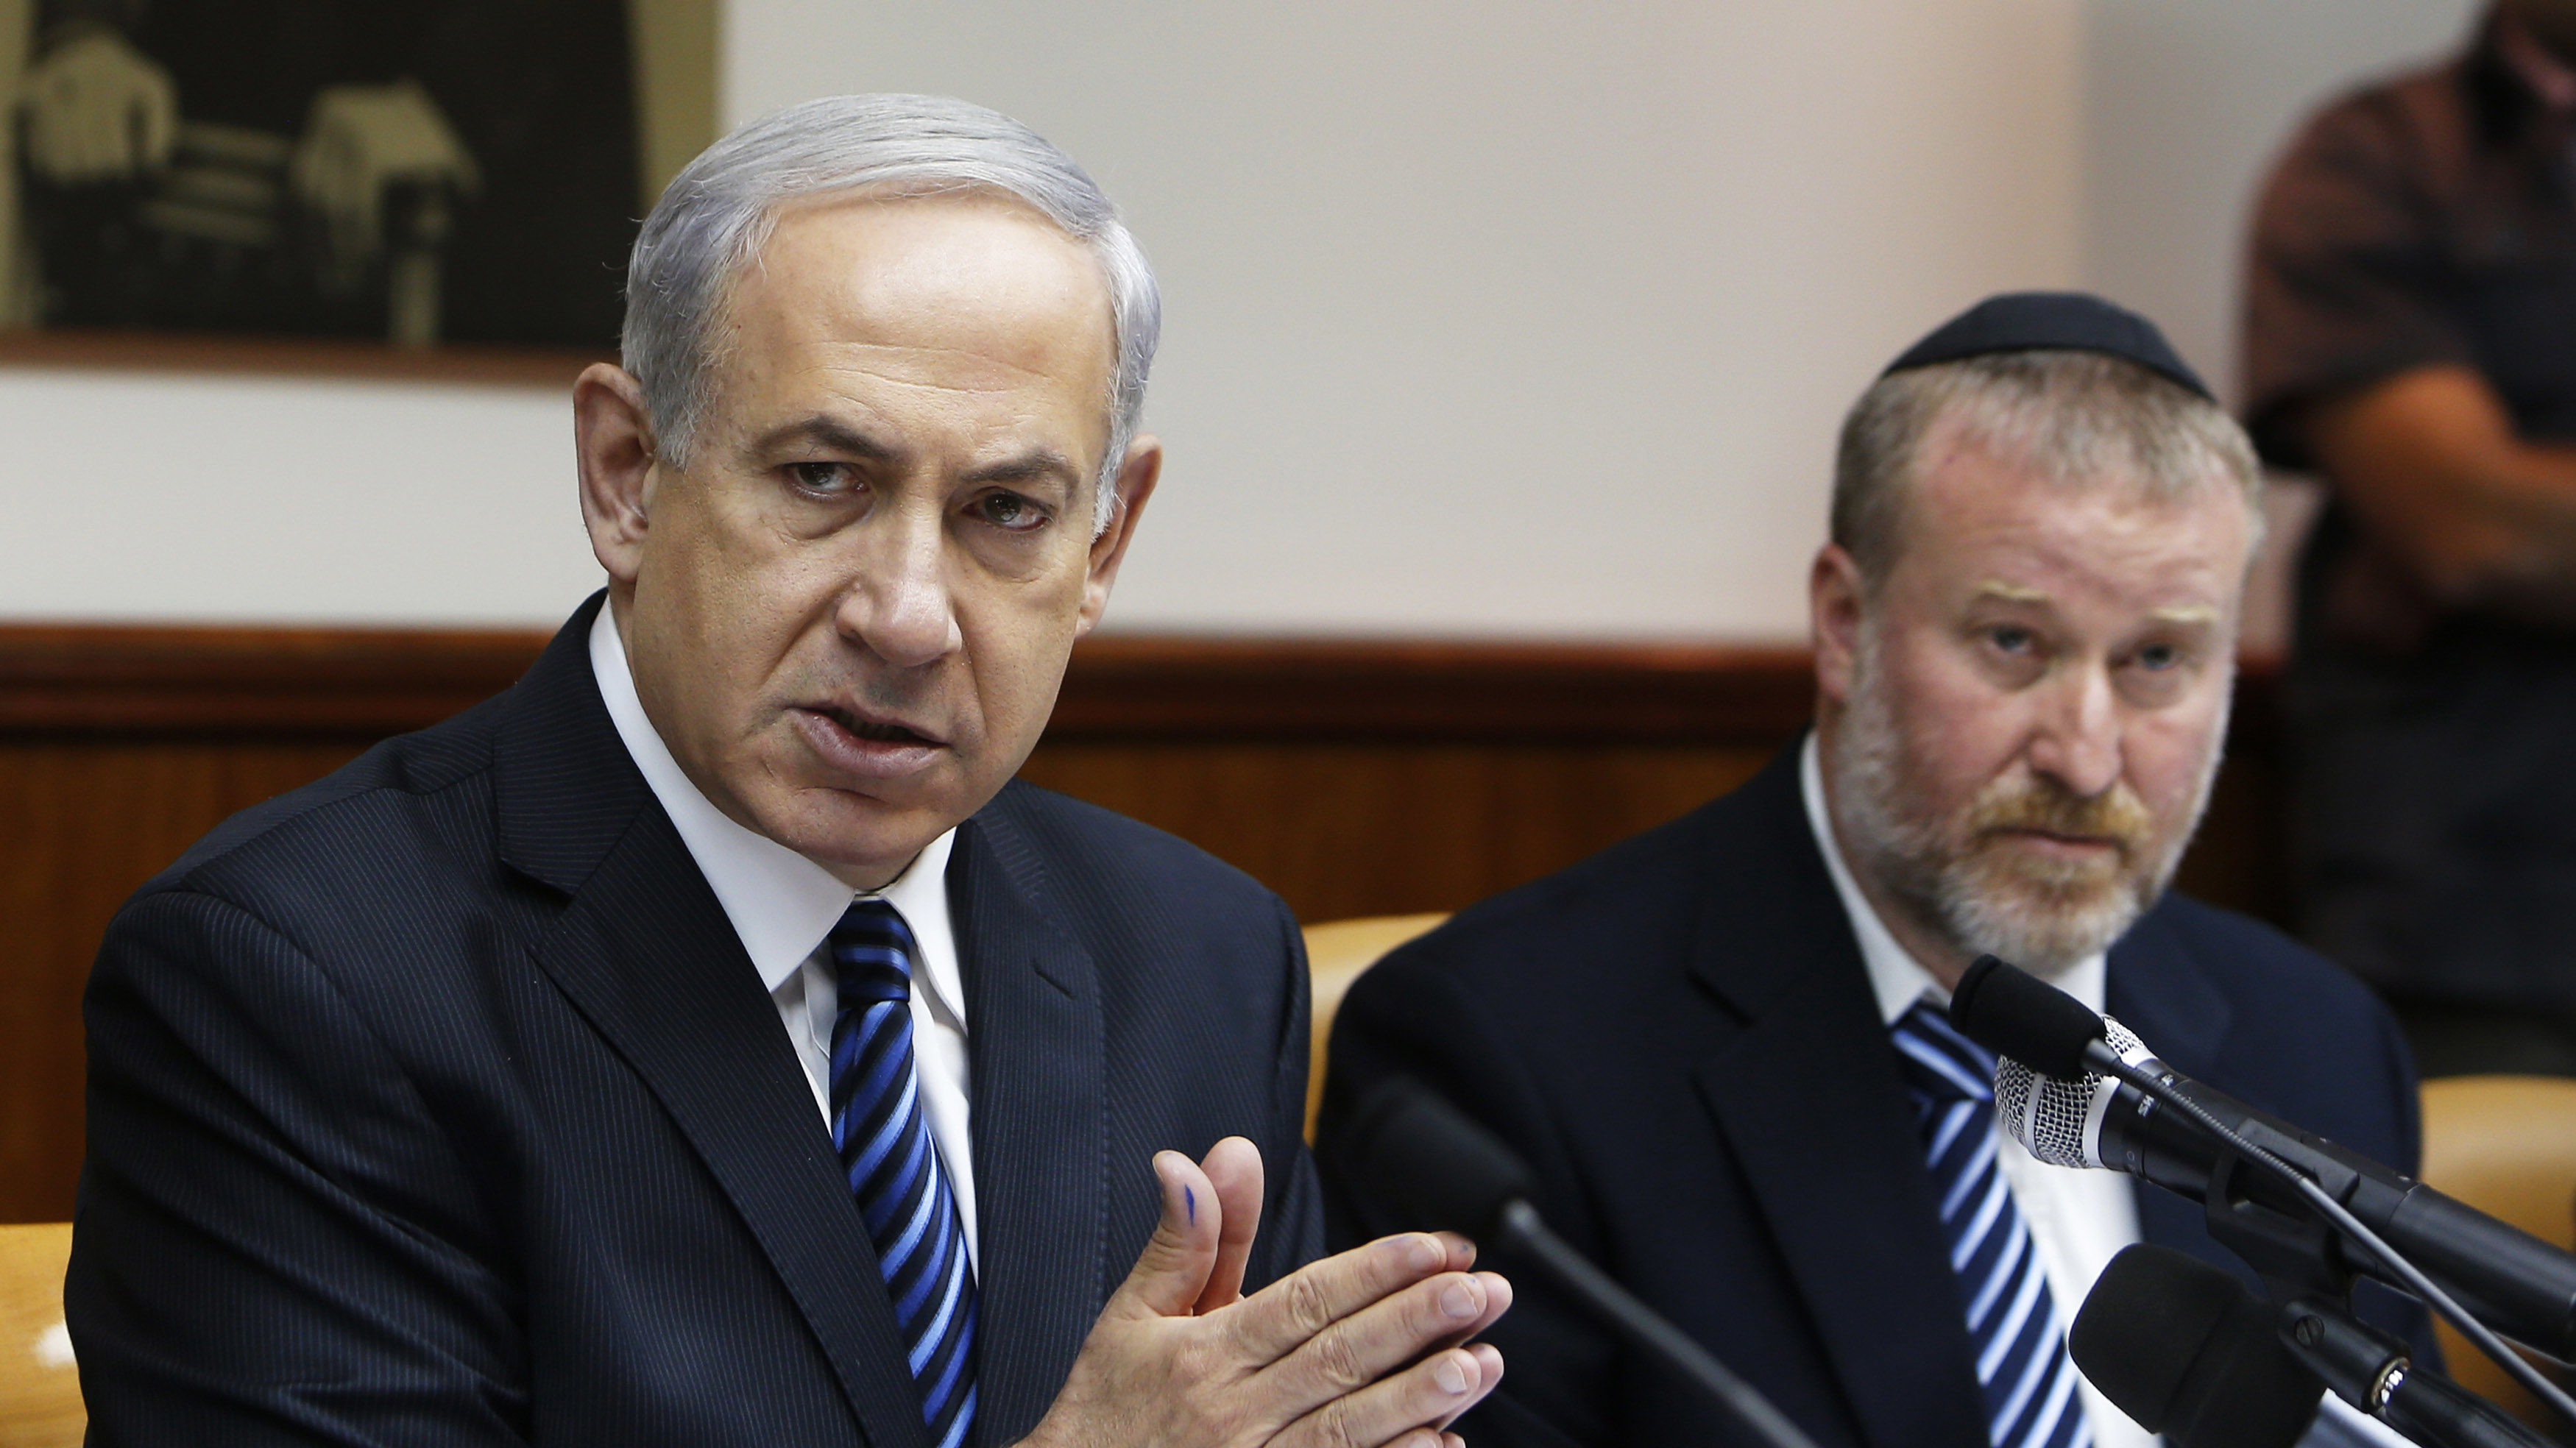 Attorney-General to Indict Israeli PM on Corruption Charges